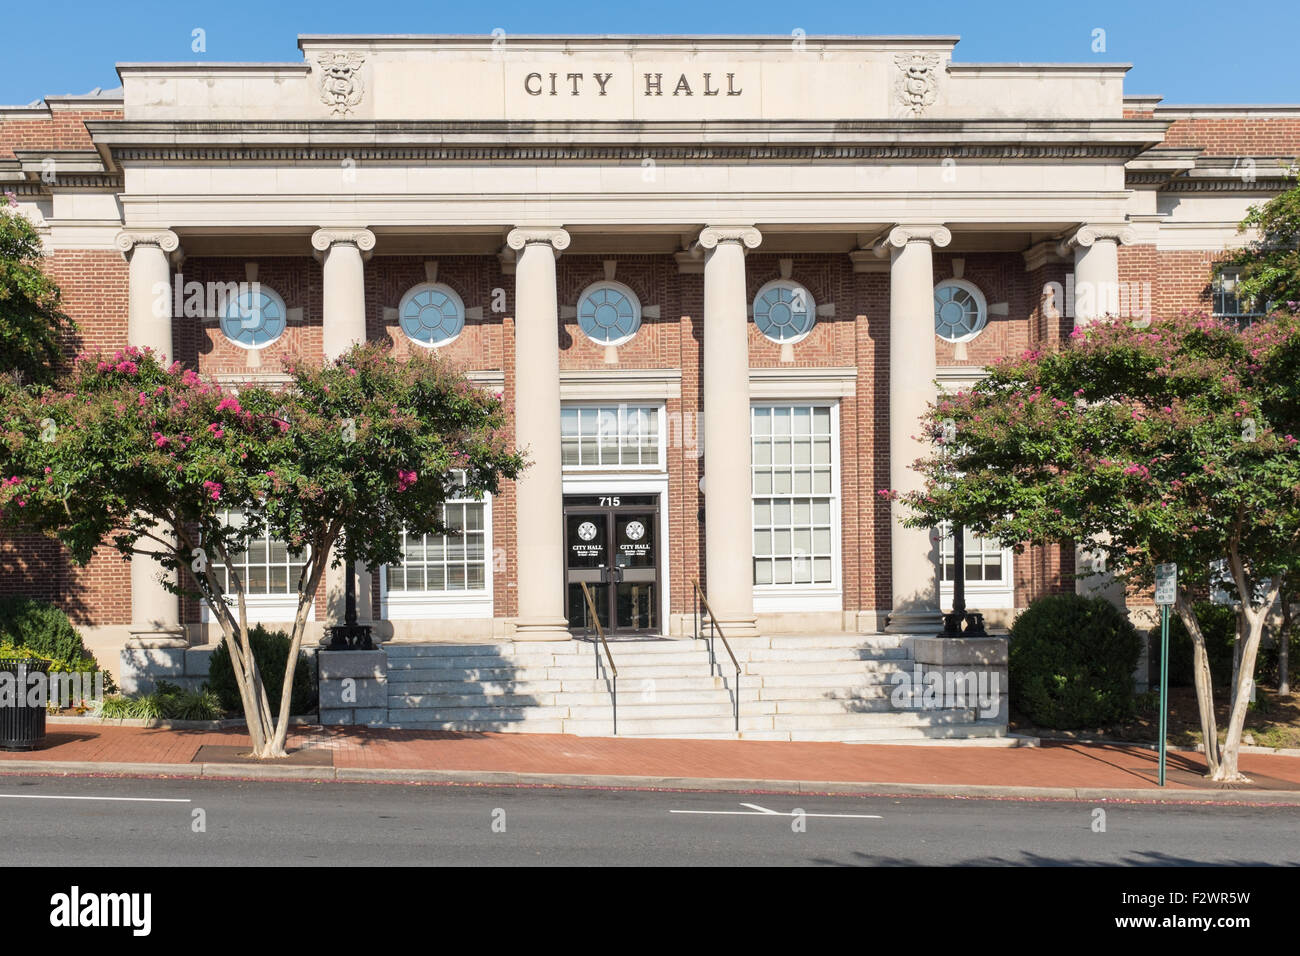 City Hall in Princess Anne Street in Fredericksburg, VA - Stock Image